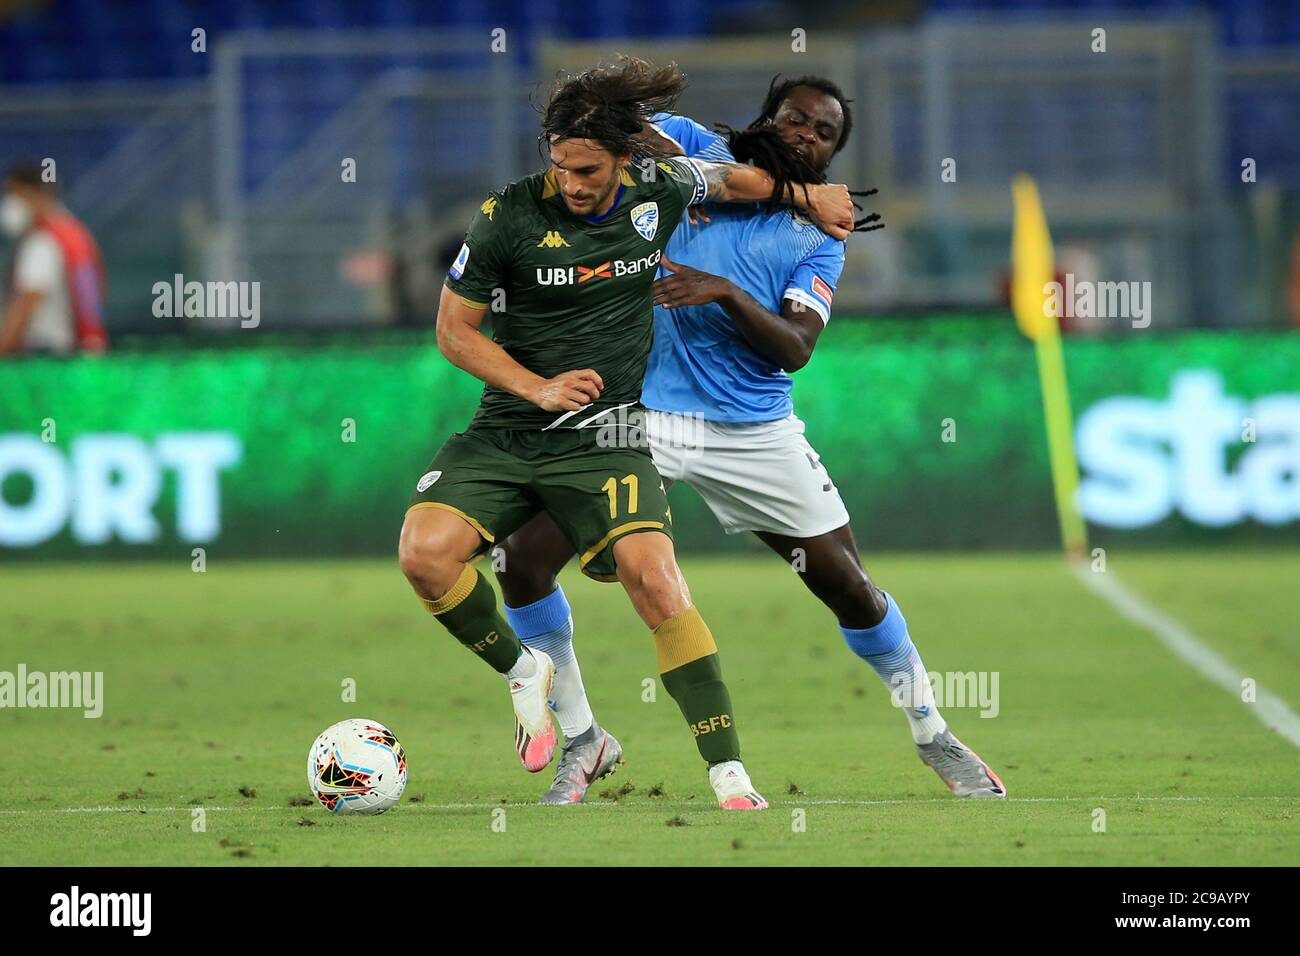 Rome Italy 29th July 2020 Ernesto Torregrossa Brescia Defends The Ball From Jordan Lukaku Lazio During